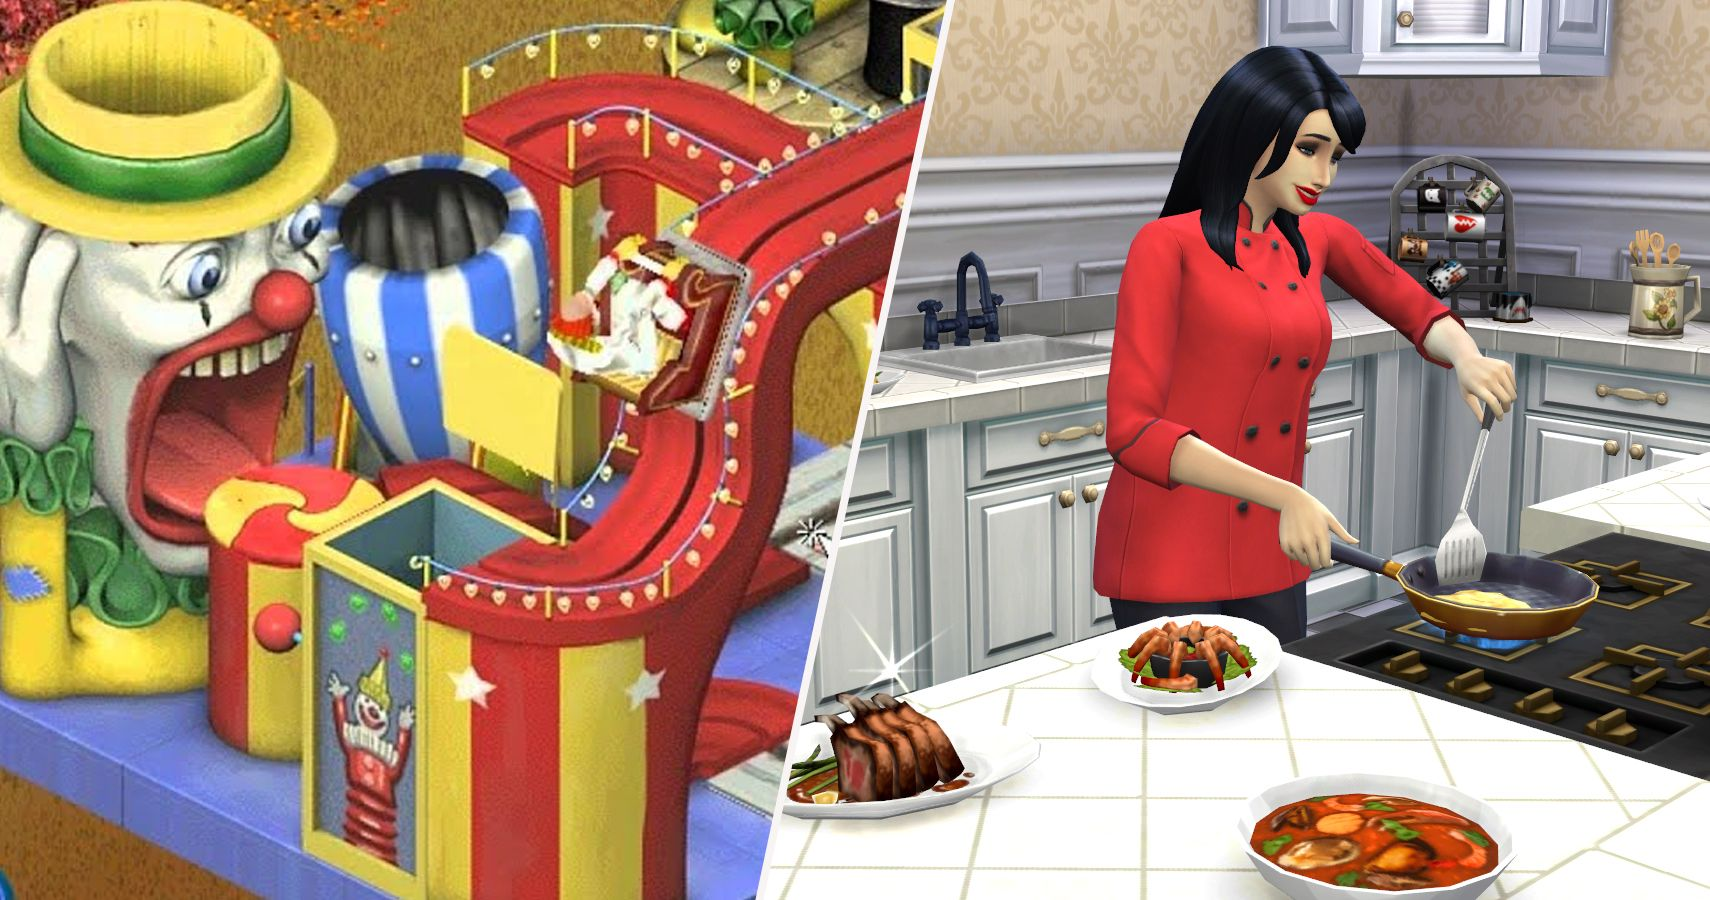 25 Amazing Things Deleted From The Classic Sims Games (That Would